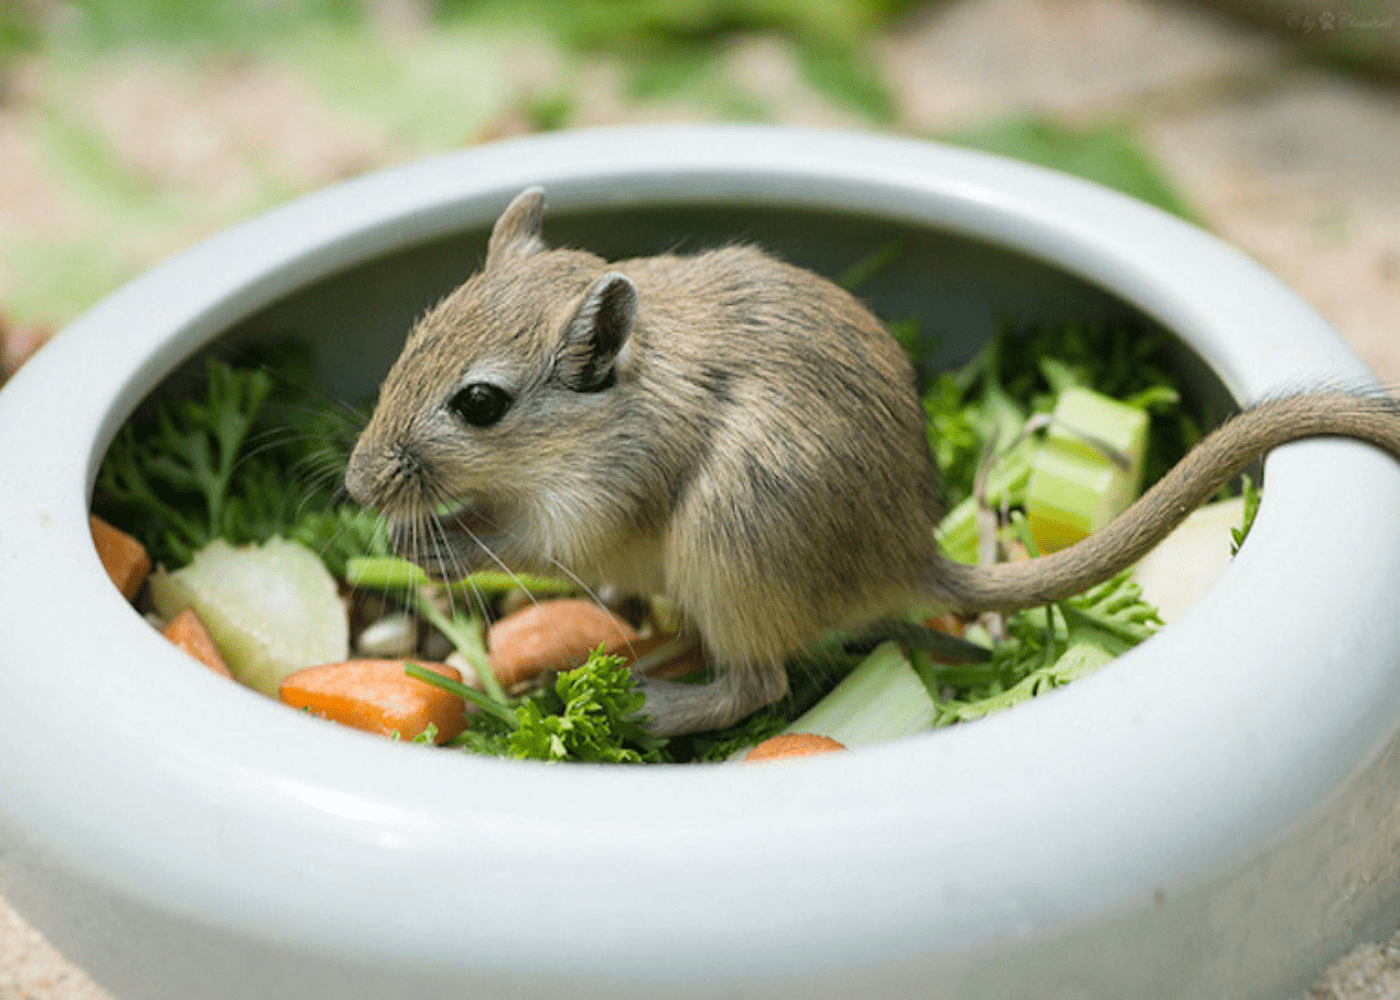 Small pets for kids in Singapore: Gerbils